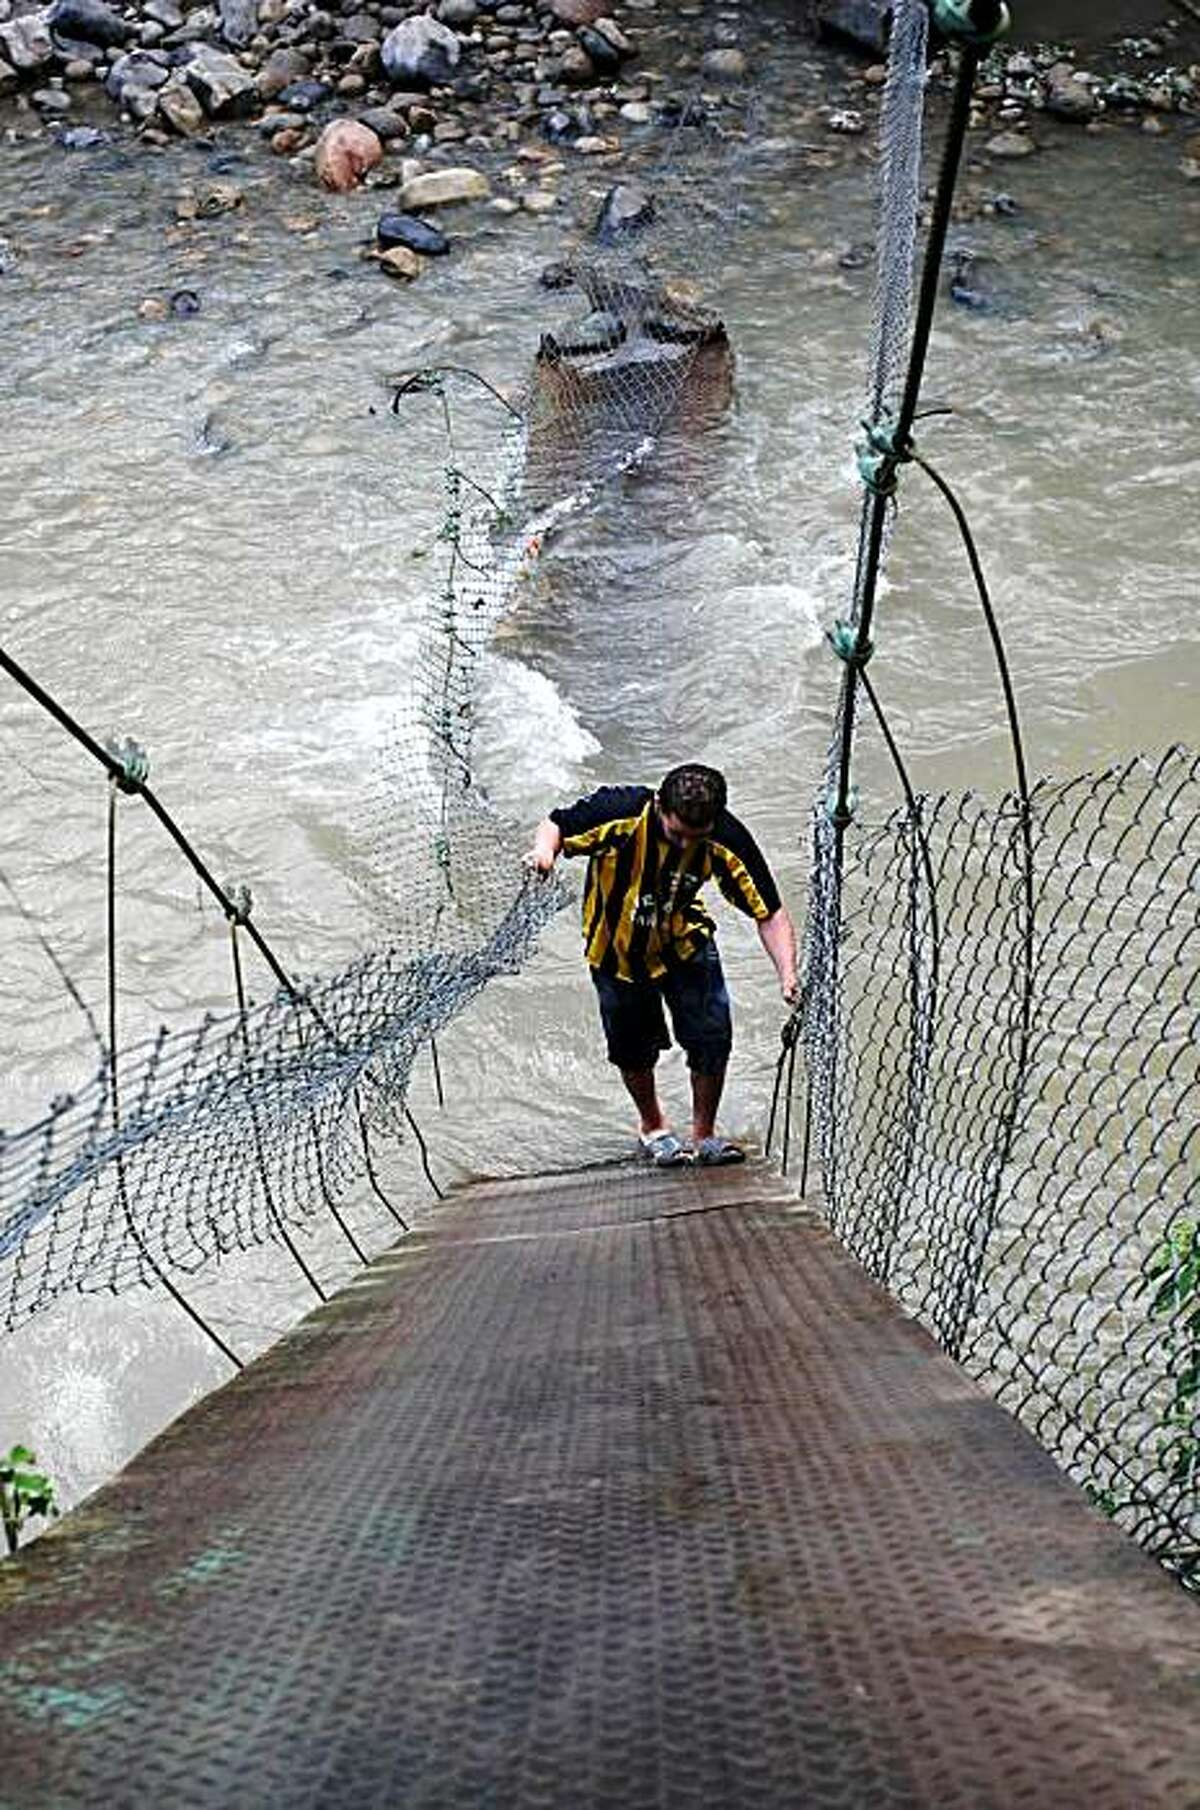 A man climbs a fallen footbridge that links Colombia and Venezuela over the Tachira River in Ragonvalia in northeastern Colombia, Friday, Nov. 20, 2009. Venezuelan Vice President Ramon Carrizales said Venezuelan soldiers destroyed two make shift bridges along its border with Colombia on Nov. 19 because they were being used by drug traffickers.